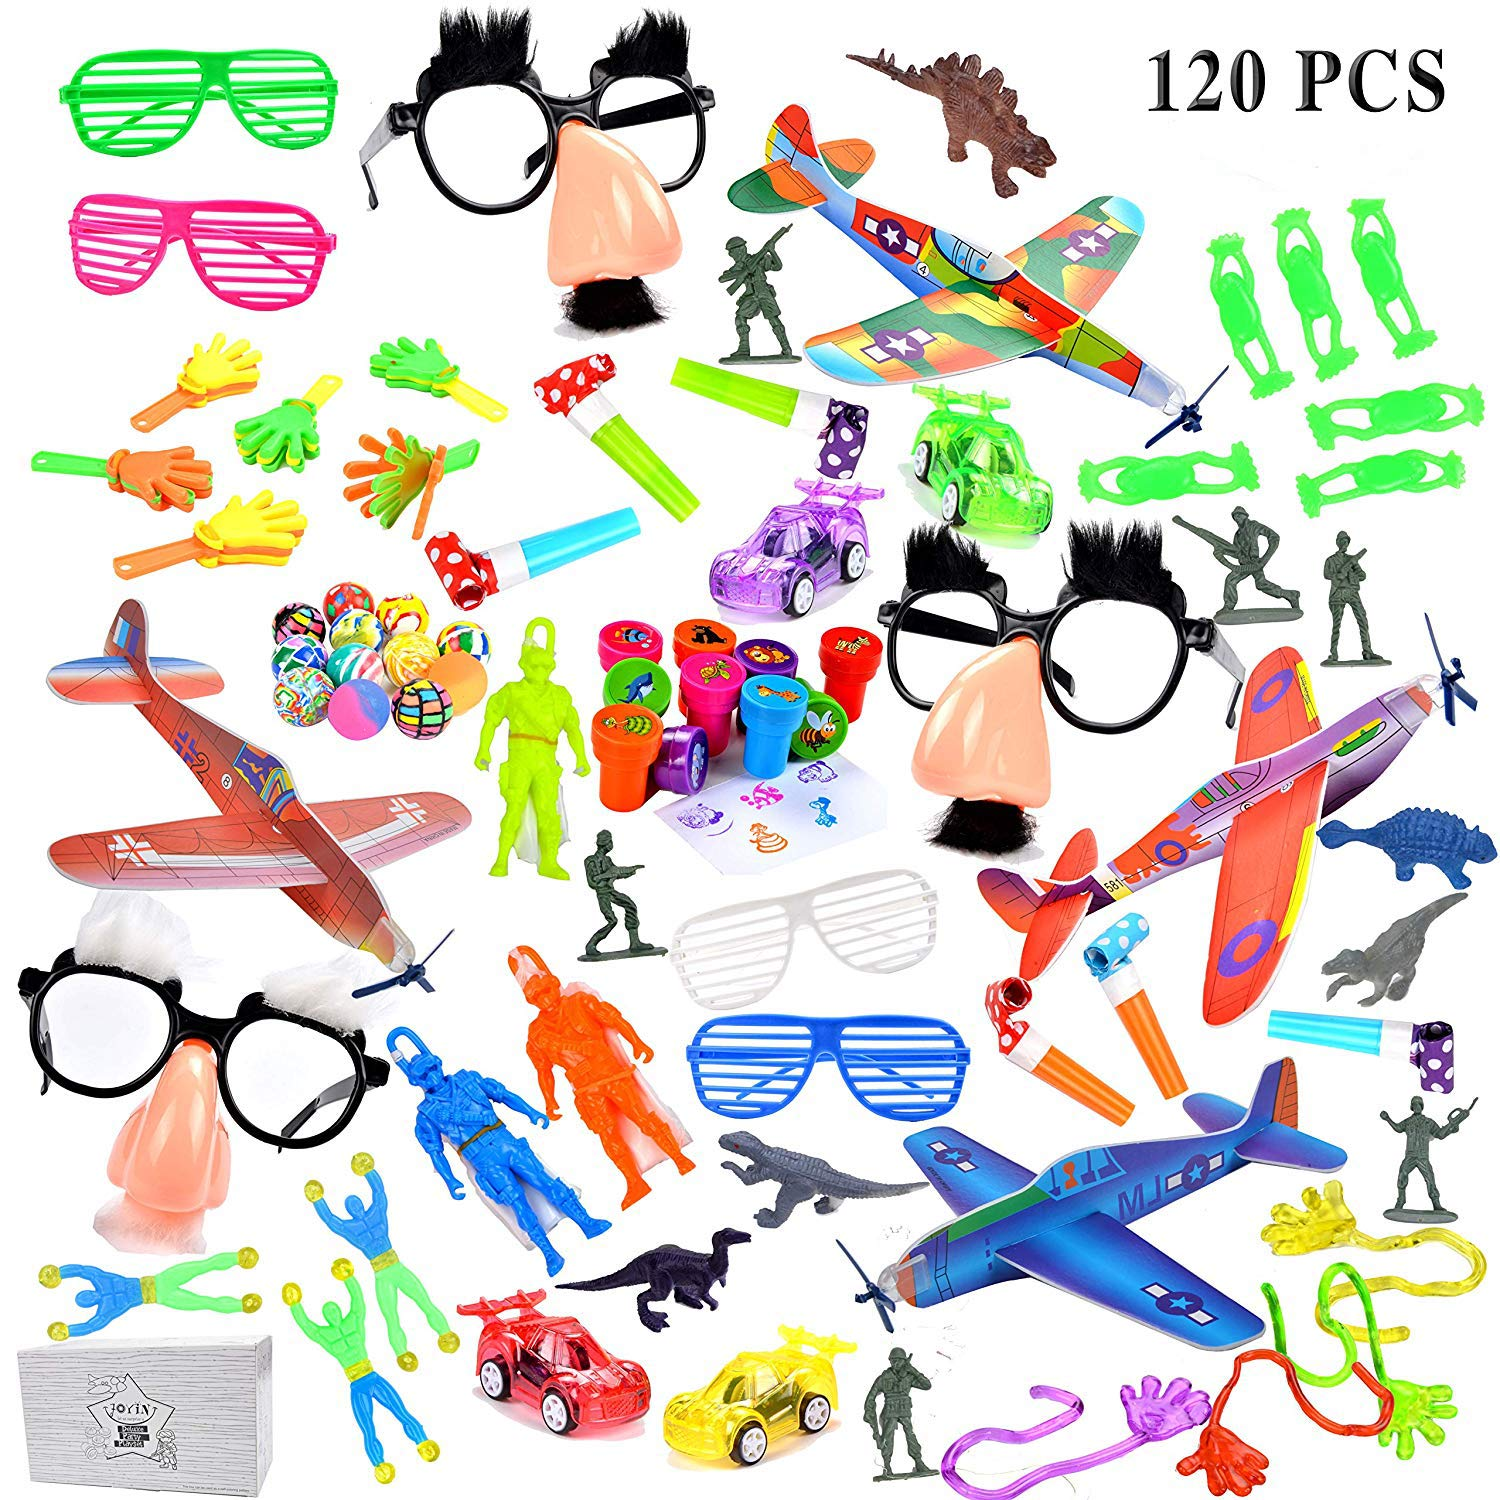 joyin 120pc party favor for kids toy assortment birthday party school classroom rewards carnival prizes pinata fillers and goodie bags fillers